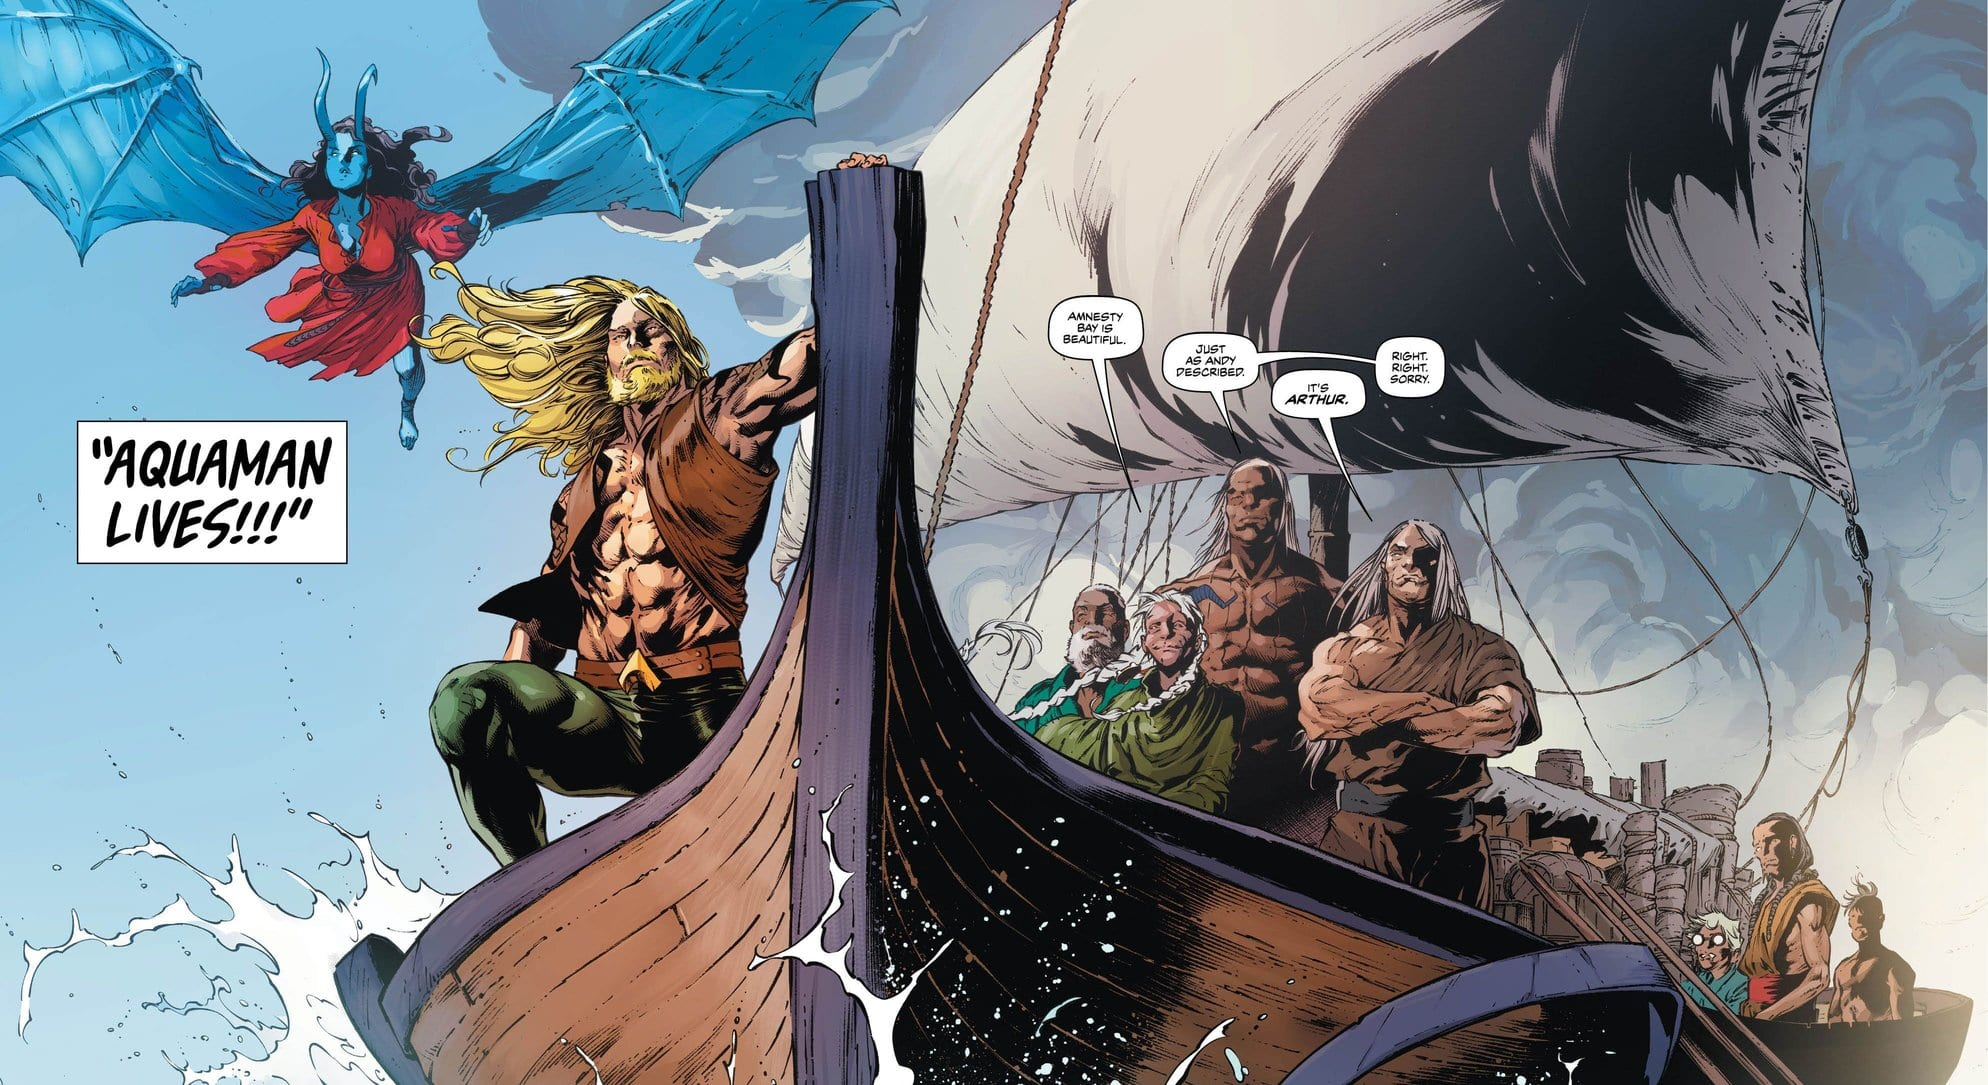 Review: Immigrants From The Sea Arrive In Amnesty Bay In AQUAMAN #50